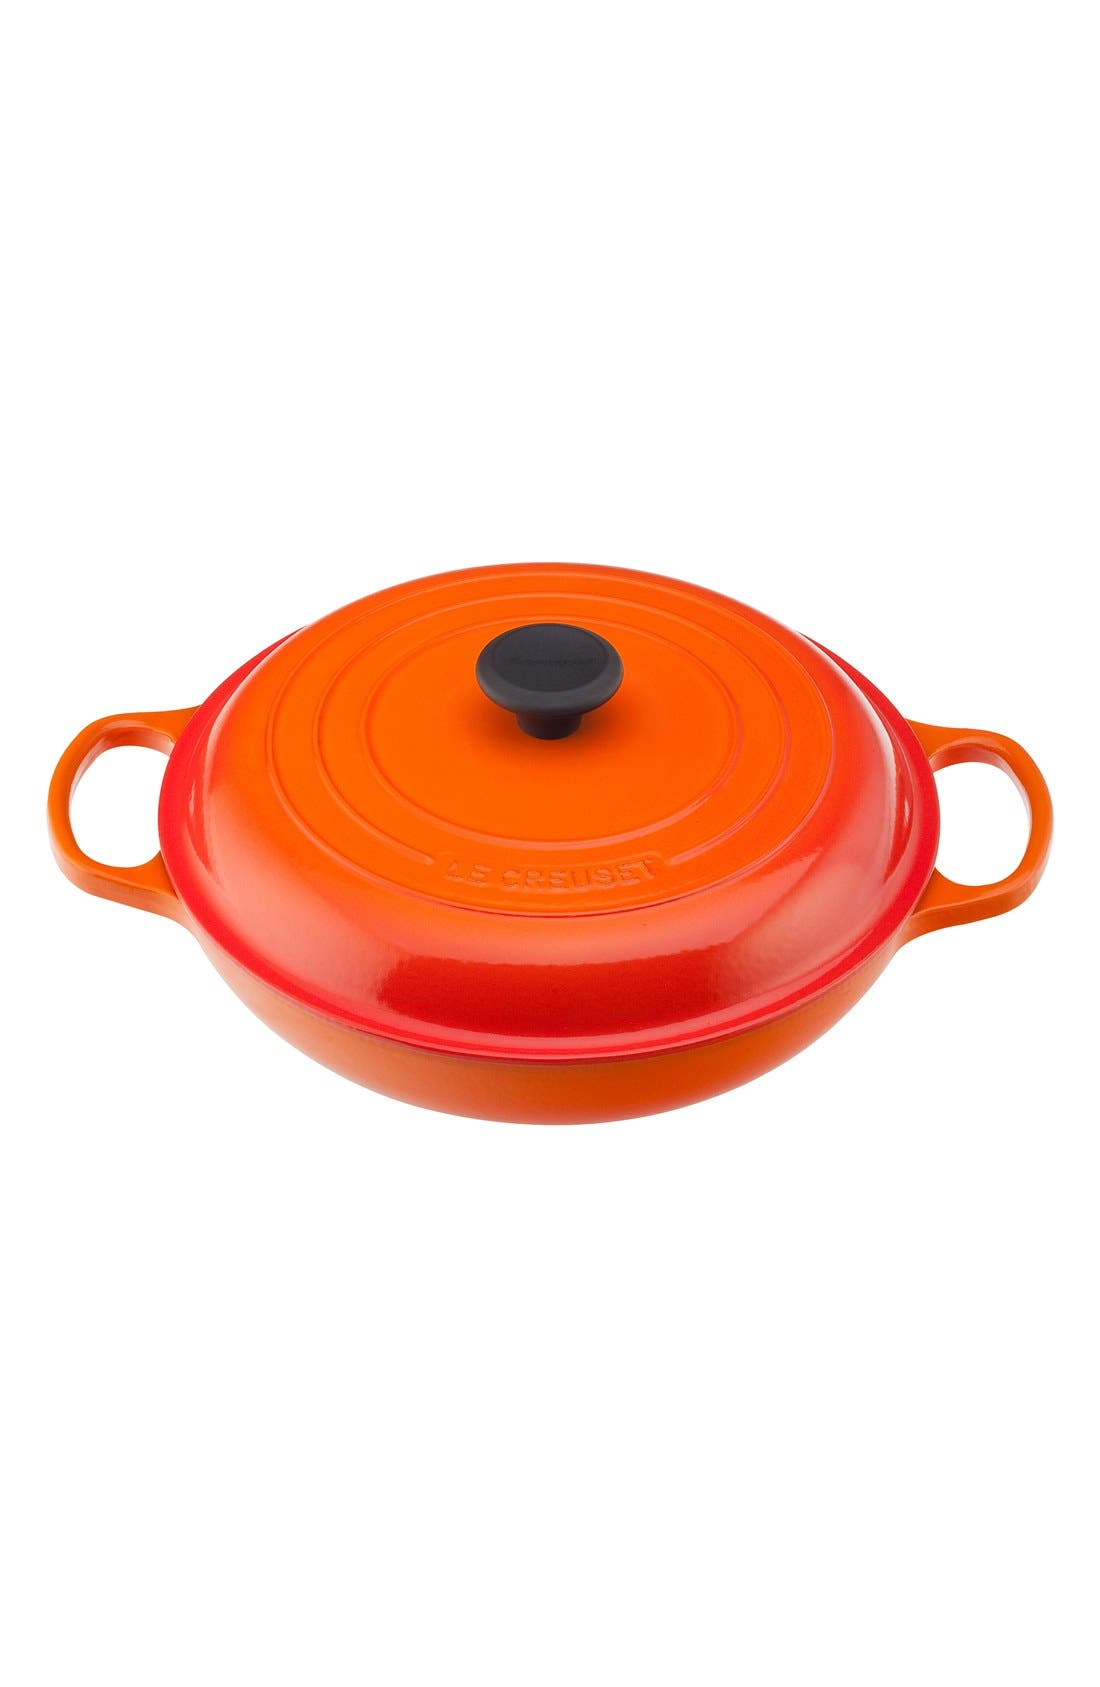 Signature 3 3/4 Quart Enameled Cast Iron Braiser,                         Main,                         color, Flame